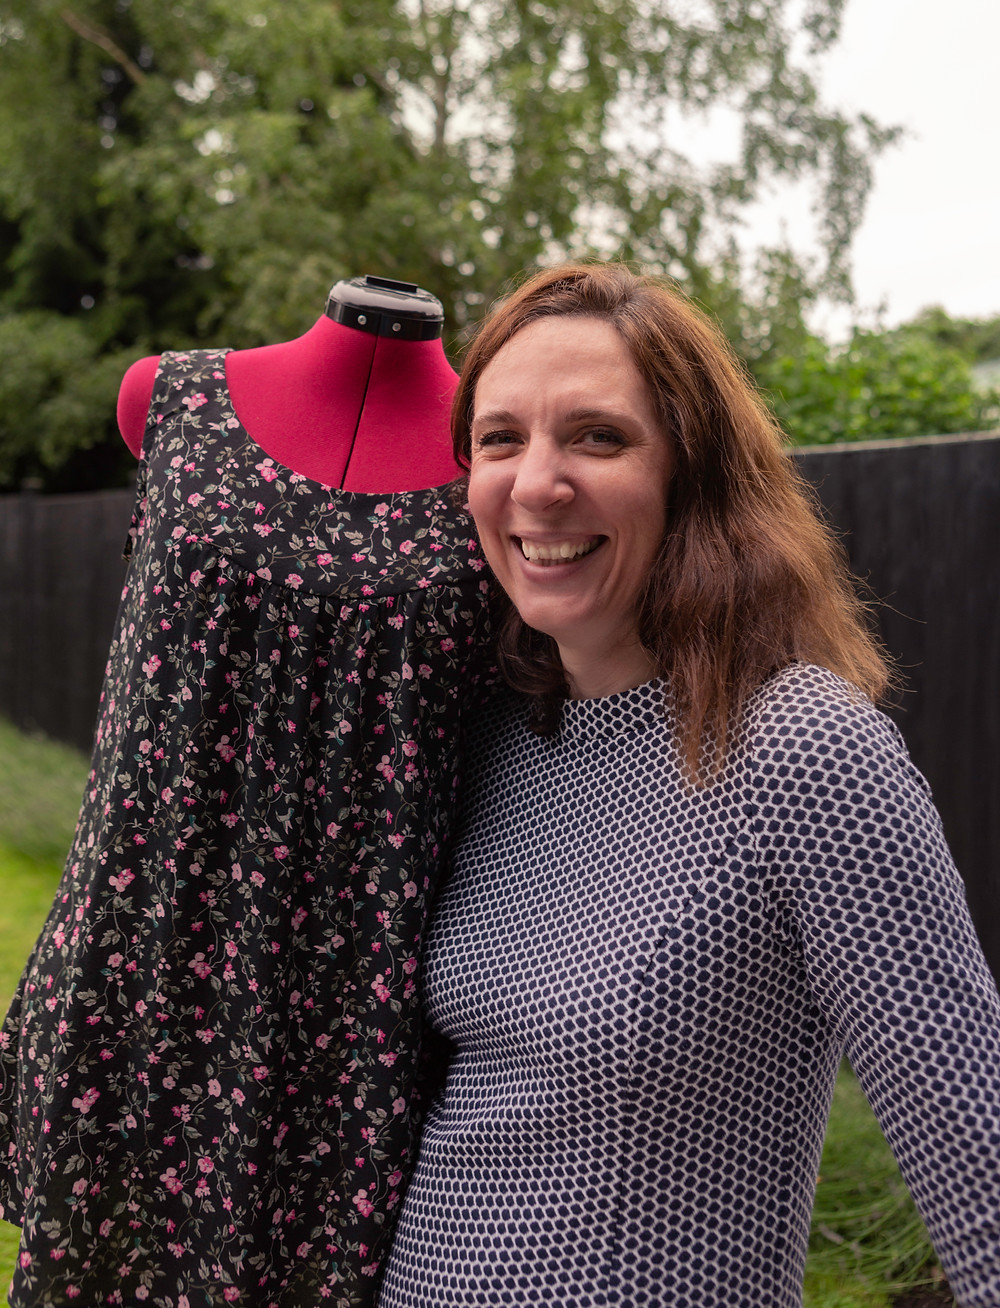 A smiling Jo Watson, of Watson Designs, standing in a garden holding a bodice wearing a top she has sewn